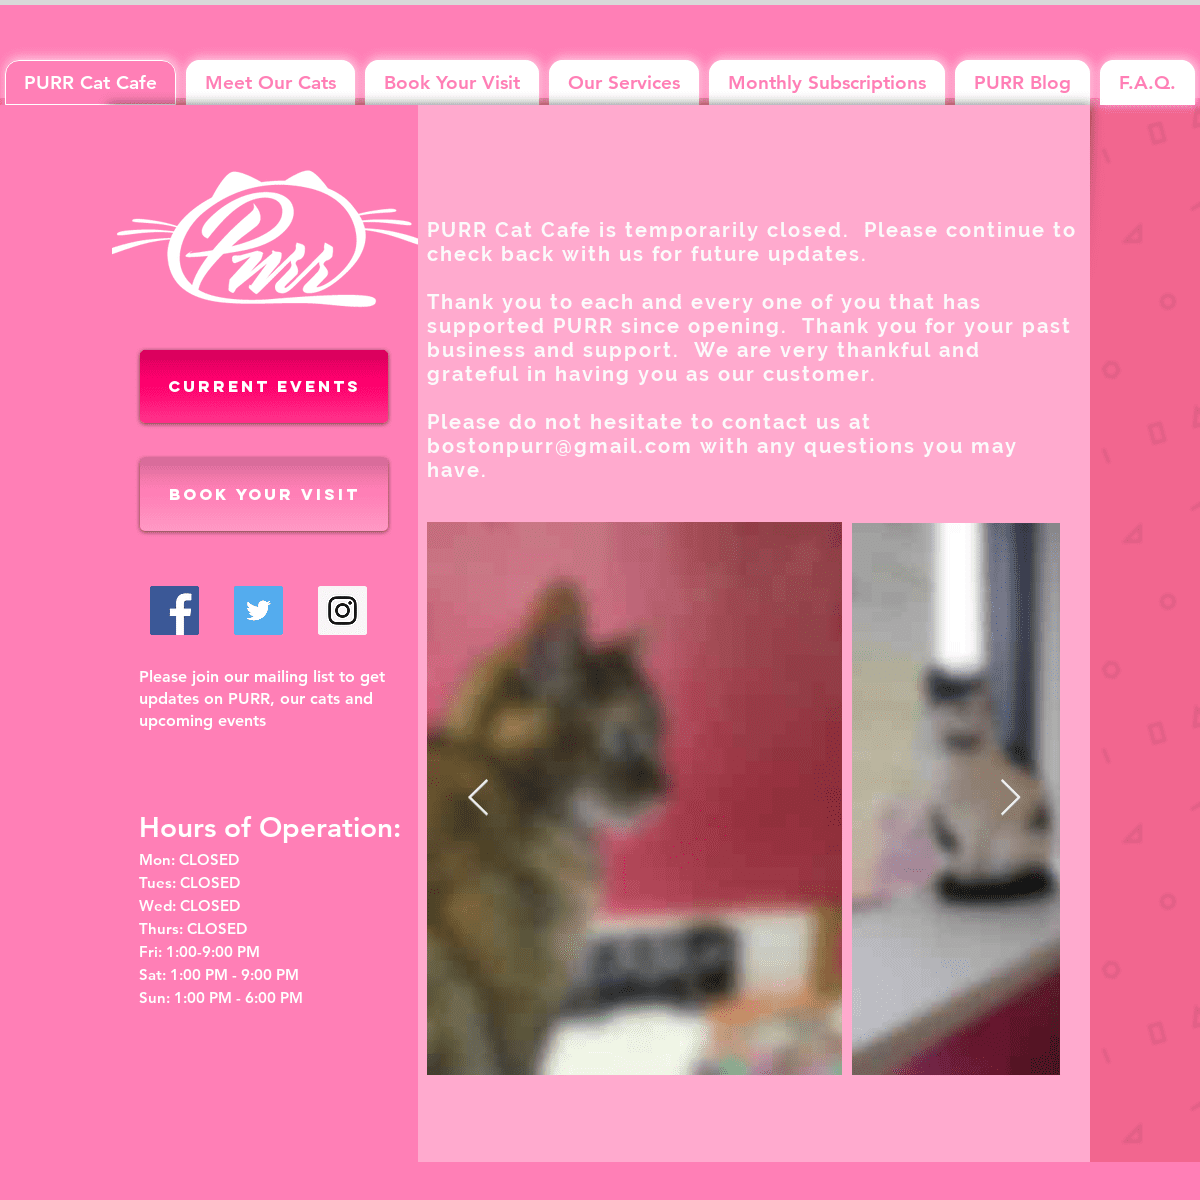 PURR Cat Cafe, Brighton & Boston purrcatcafe.com (Citation ...